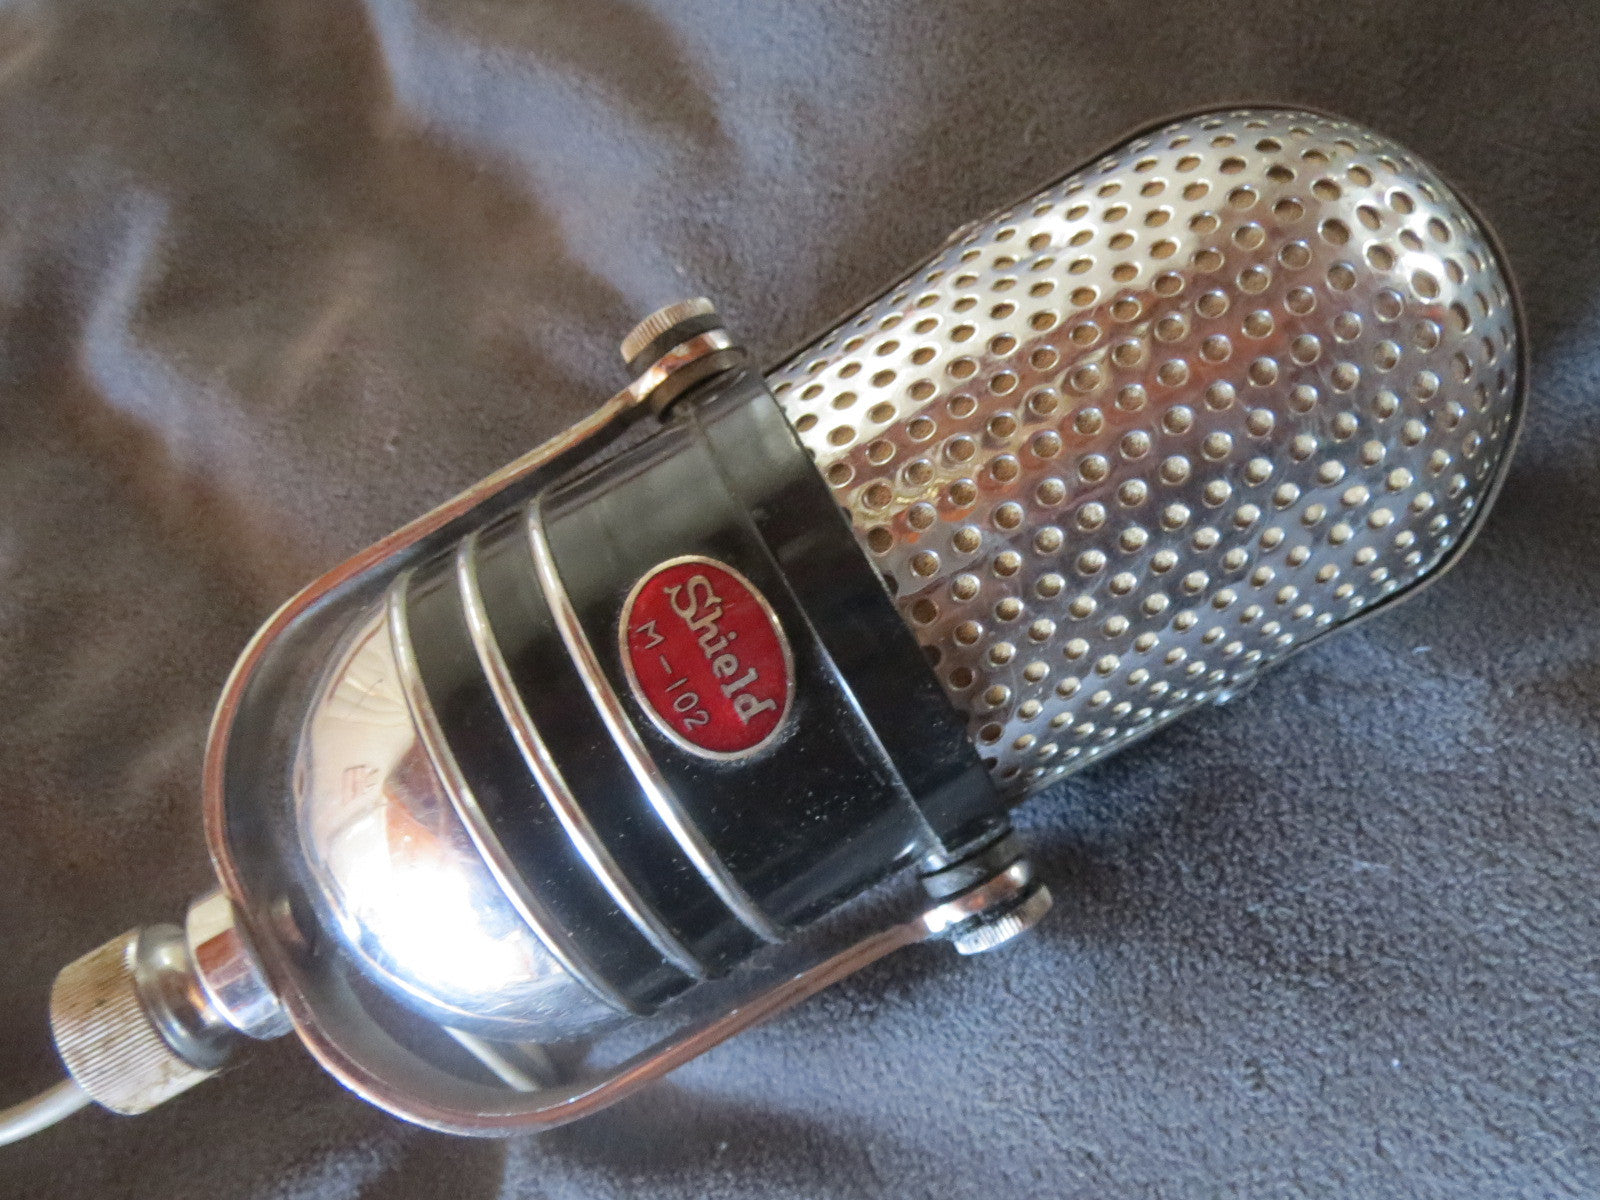 VINTAGE 1950s  SHIELD M102 ART DECO CRYSTAL MICROPHONE MADE IN JAPAN RCA 77 COPY